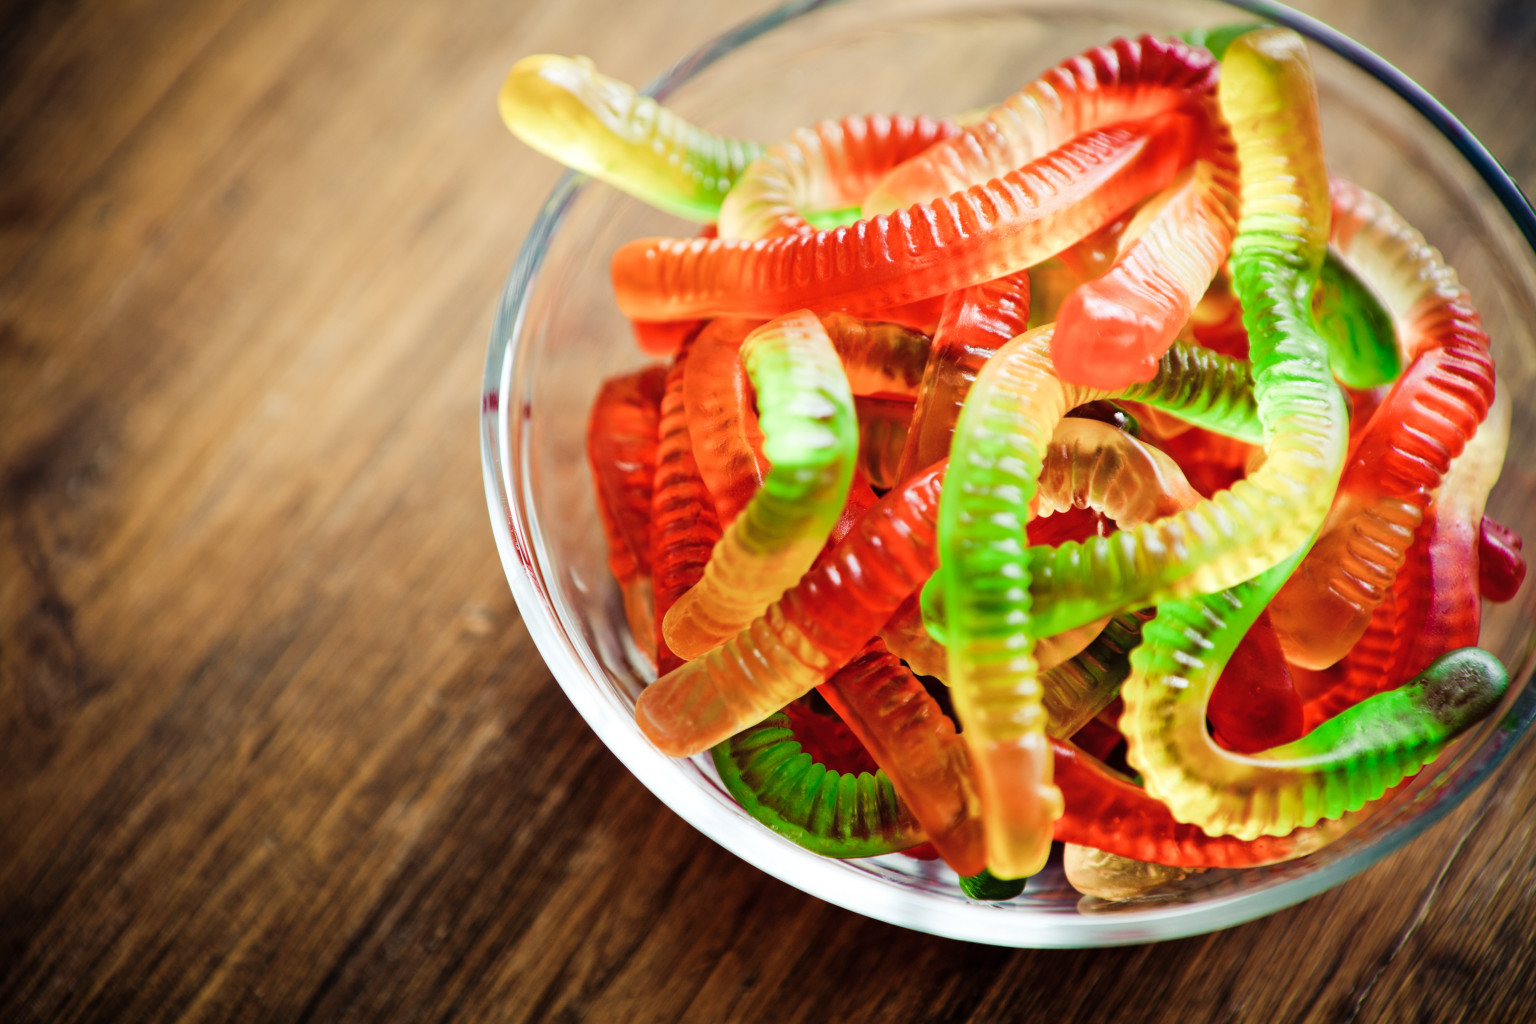 Gummy Worms What Are They Made Of Anyway